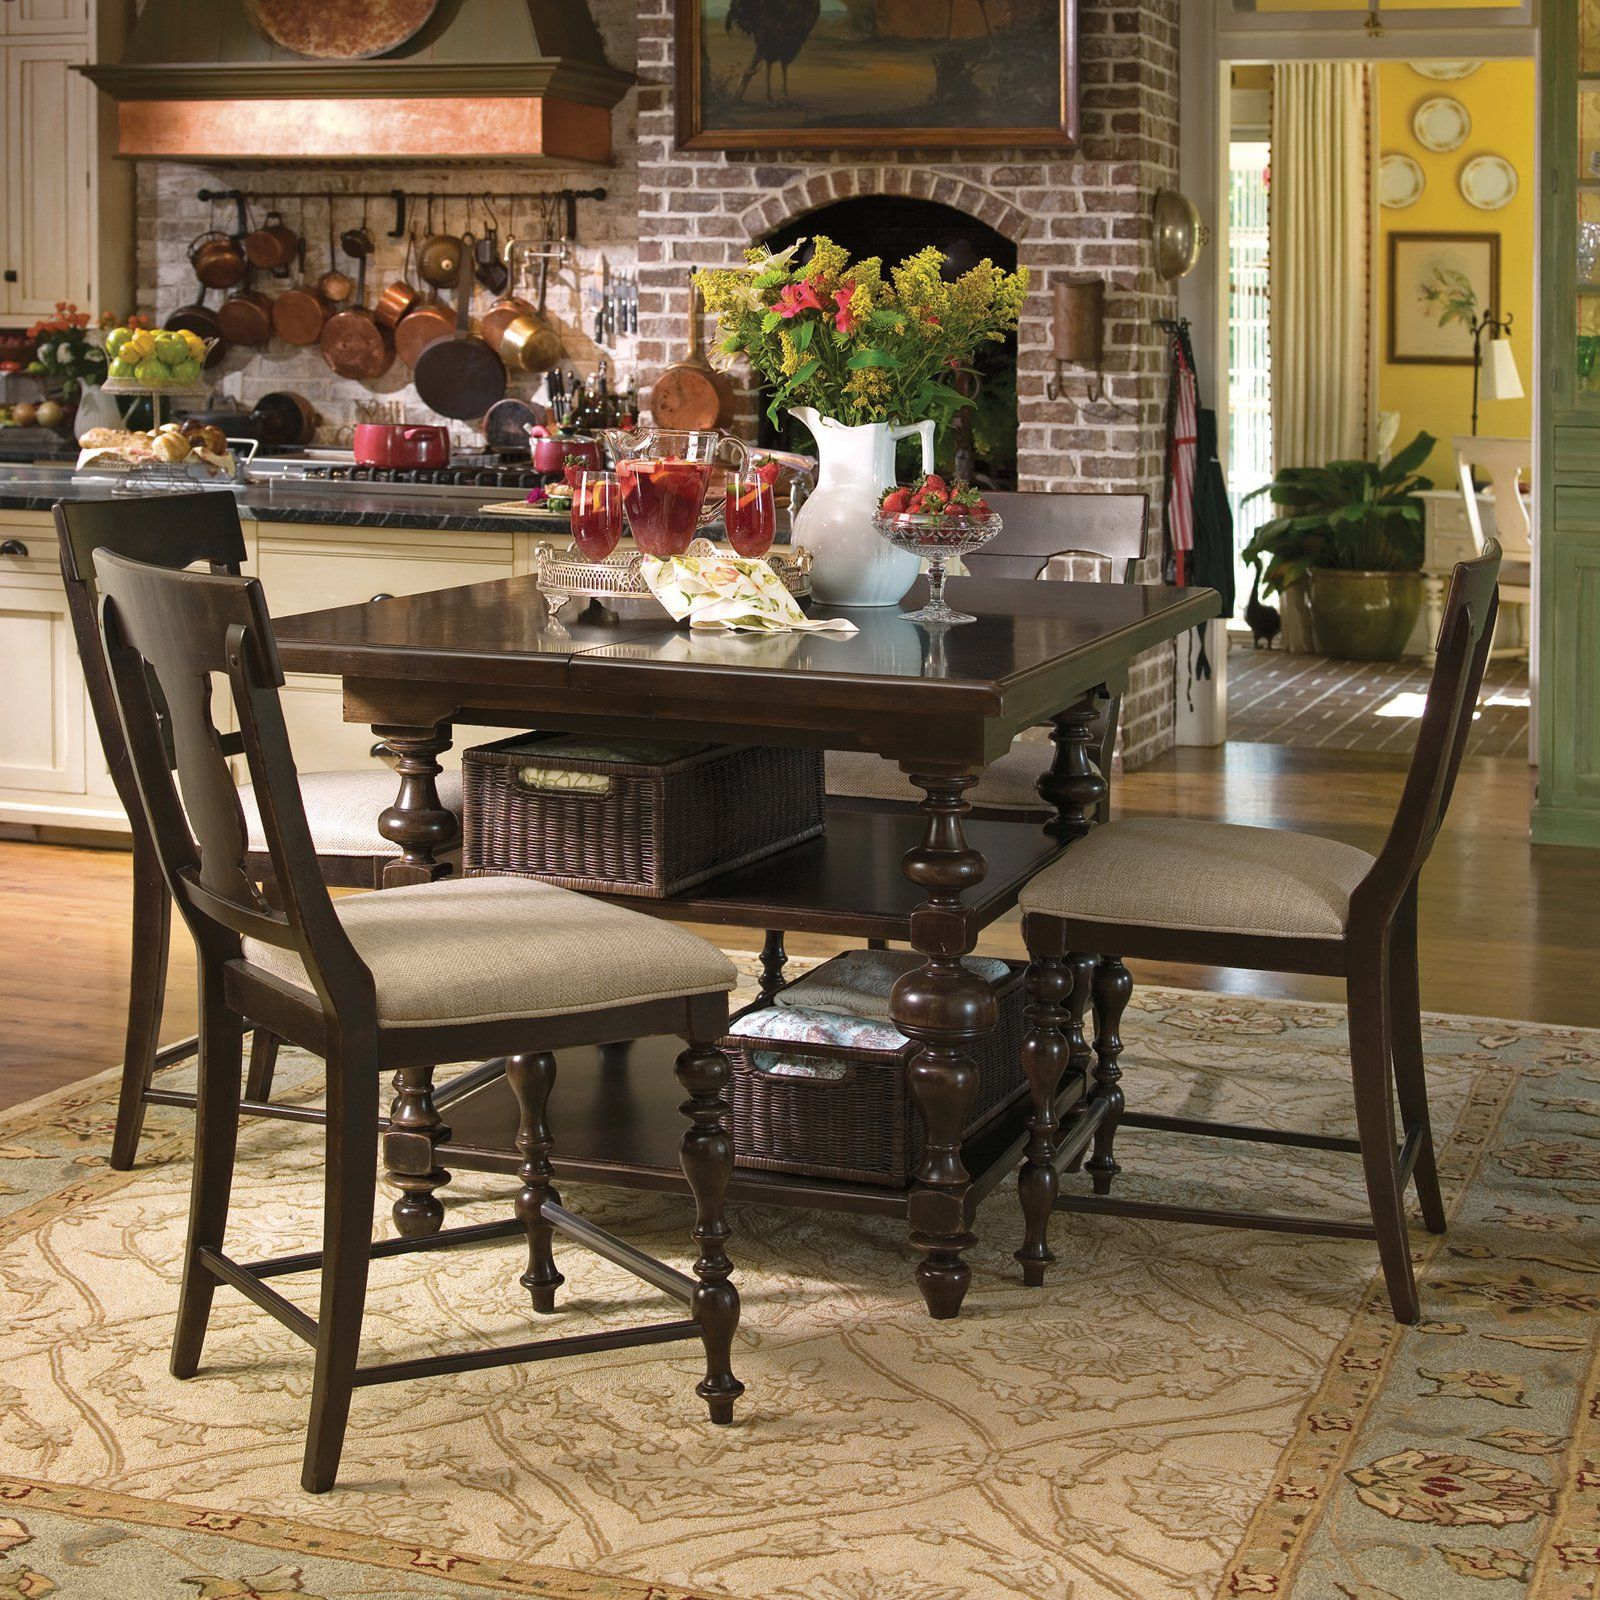 salle a manger de style campagne have to have it paula deen down home gathering table 5 piece counter height set tobacco 2750 hayneedle